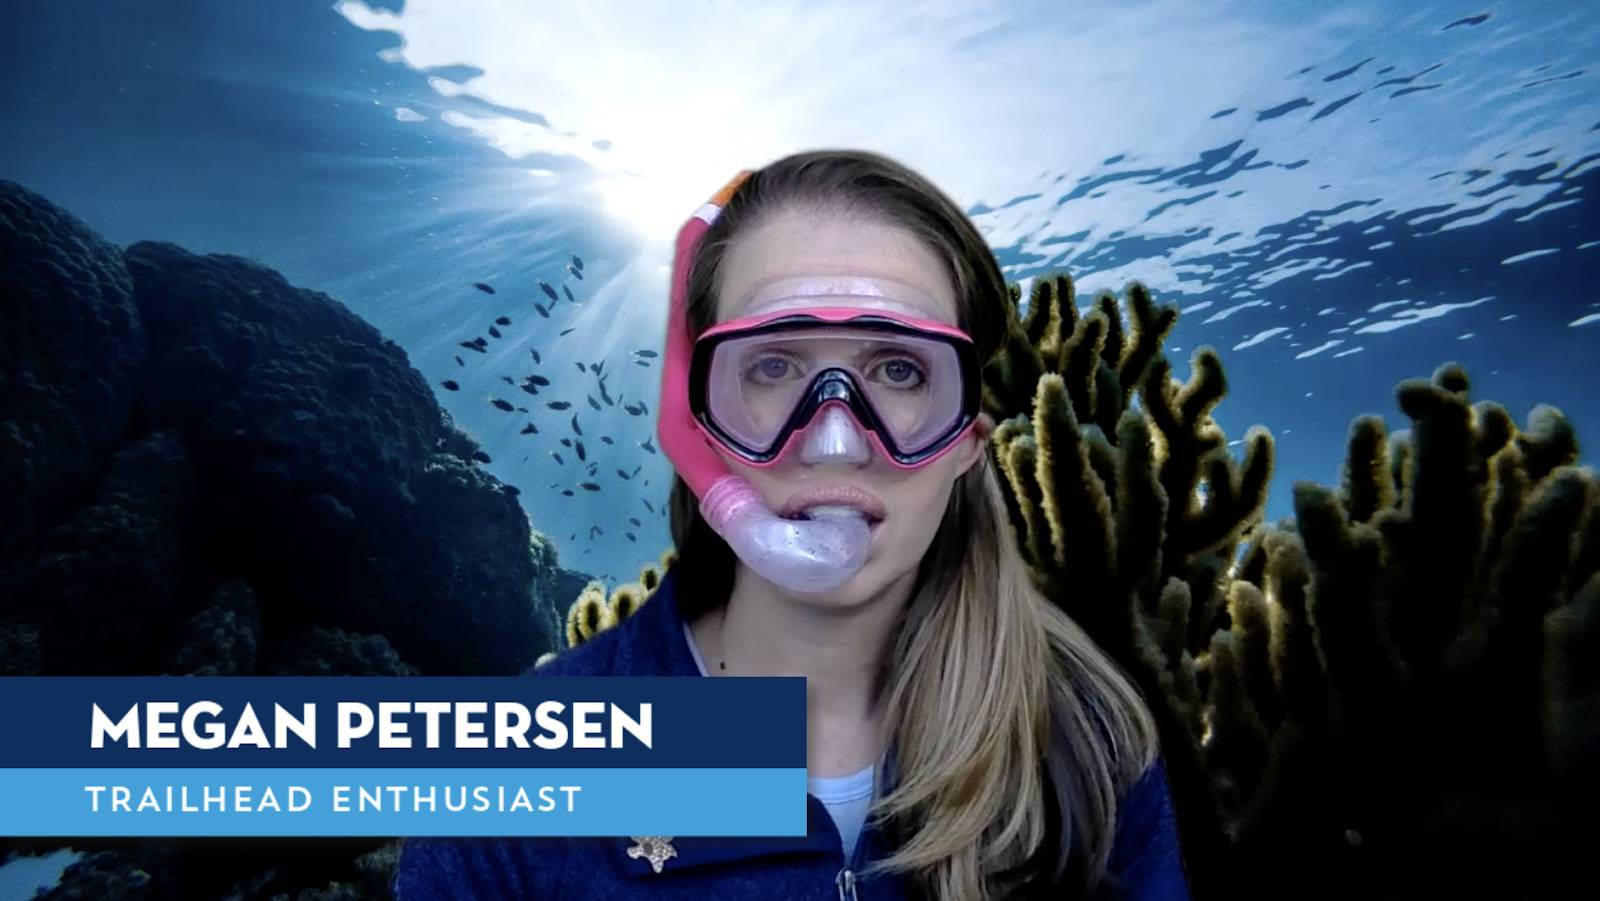 a picture of a woman underwater wearing a snorkel mask with a lower third showing her name and title